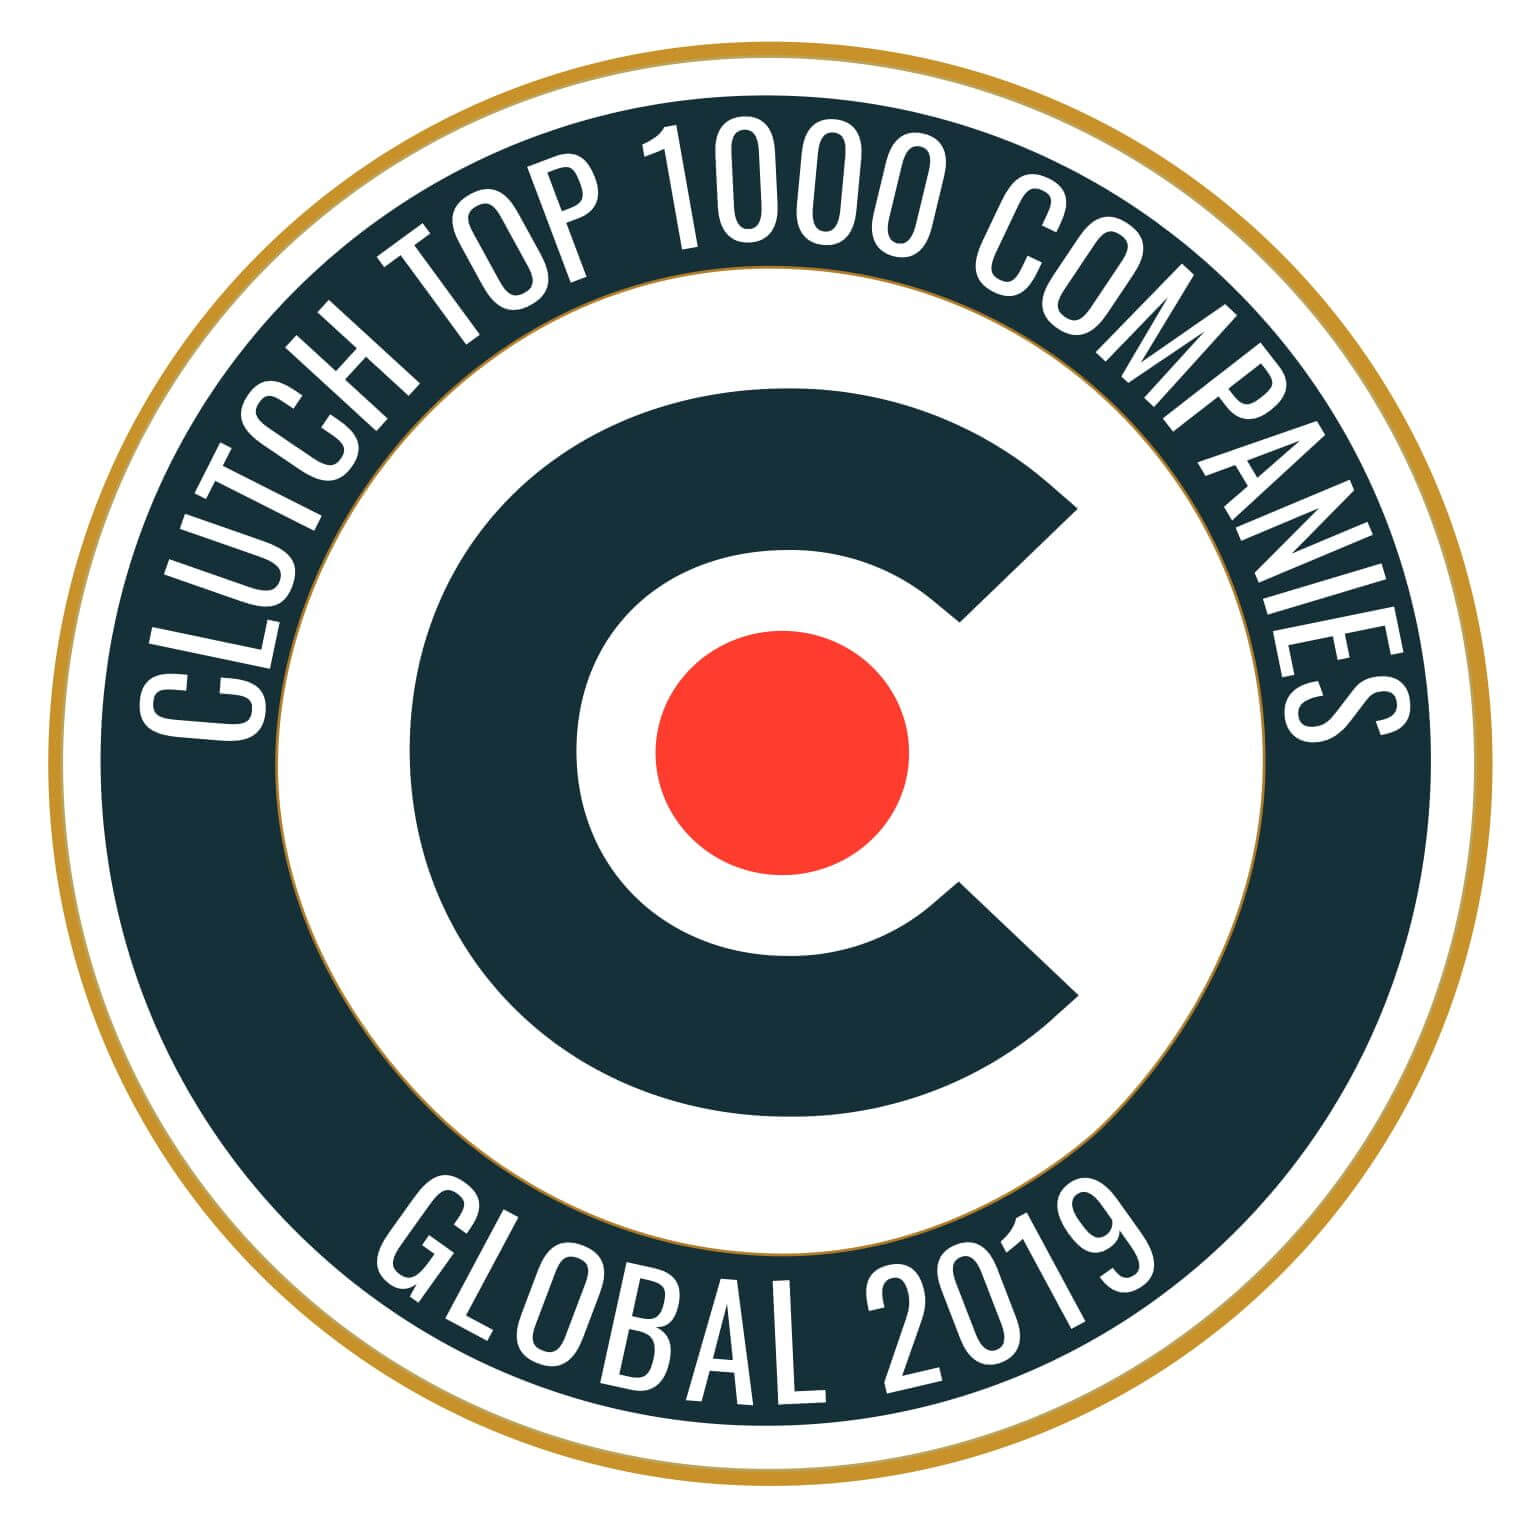 Clutch Global top 1000 companies